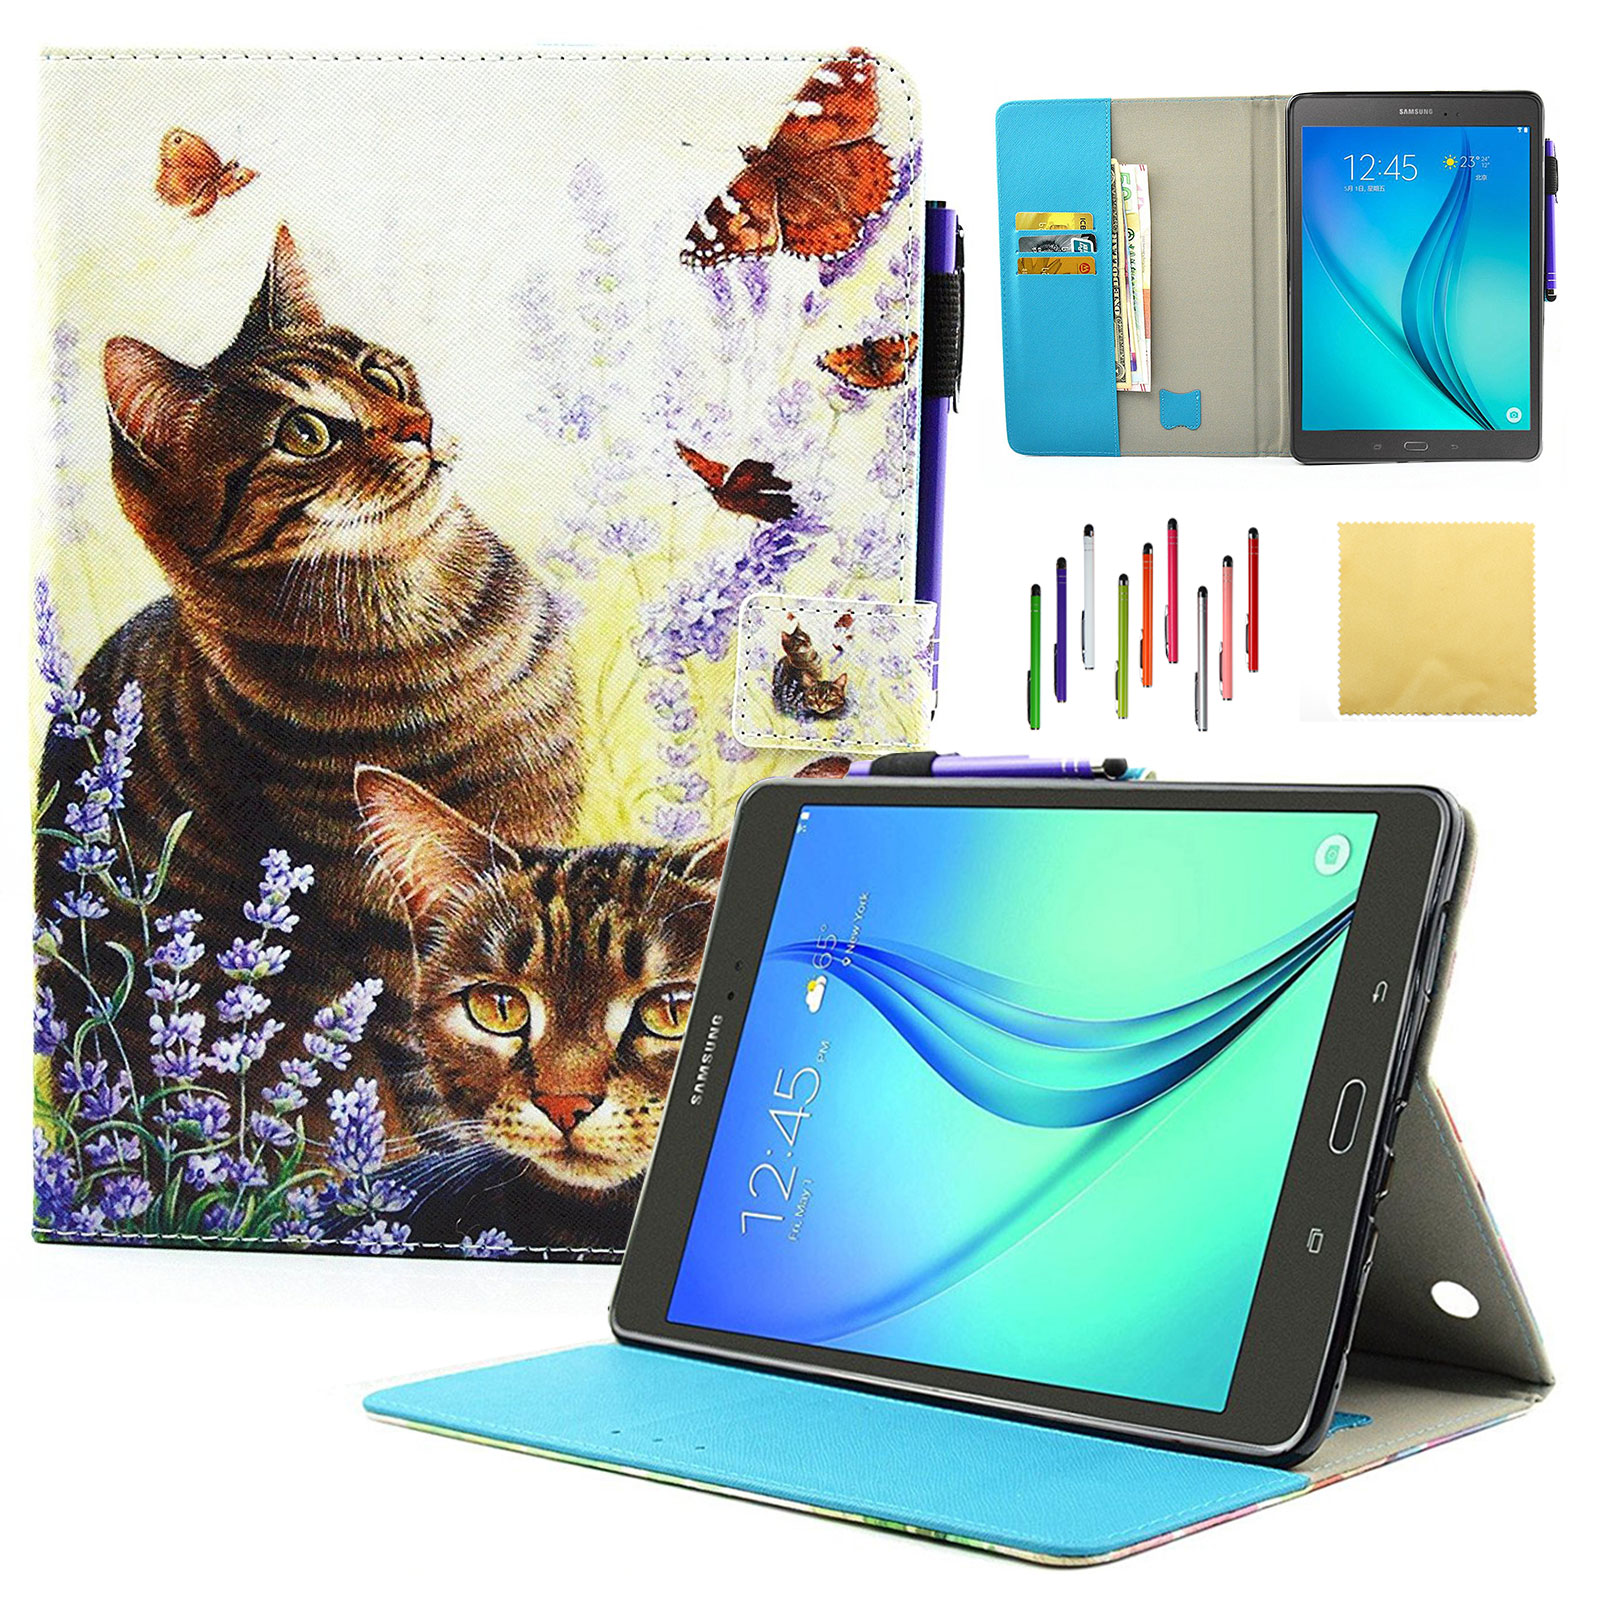 "Galaxy Tab A 9.7"" Case, SM-T550/SM-P550 Case, Goodest Smart PU Leather Folio Stand Cover with Auto Wake/Sleep Wallet Case for Samsung Galaxy Tab A 9.7-inch Tablet with S Pen, Cat and Butterfly"